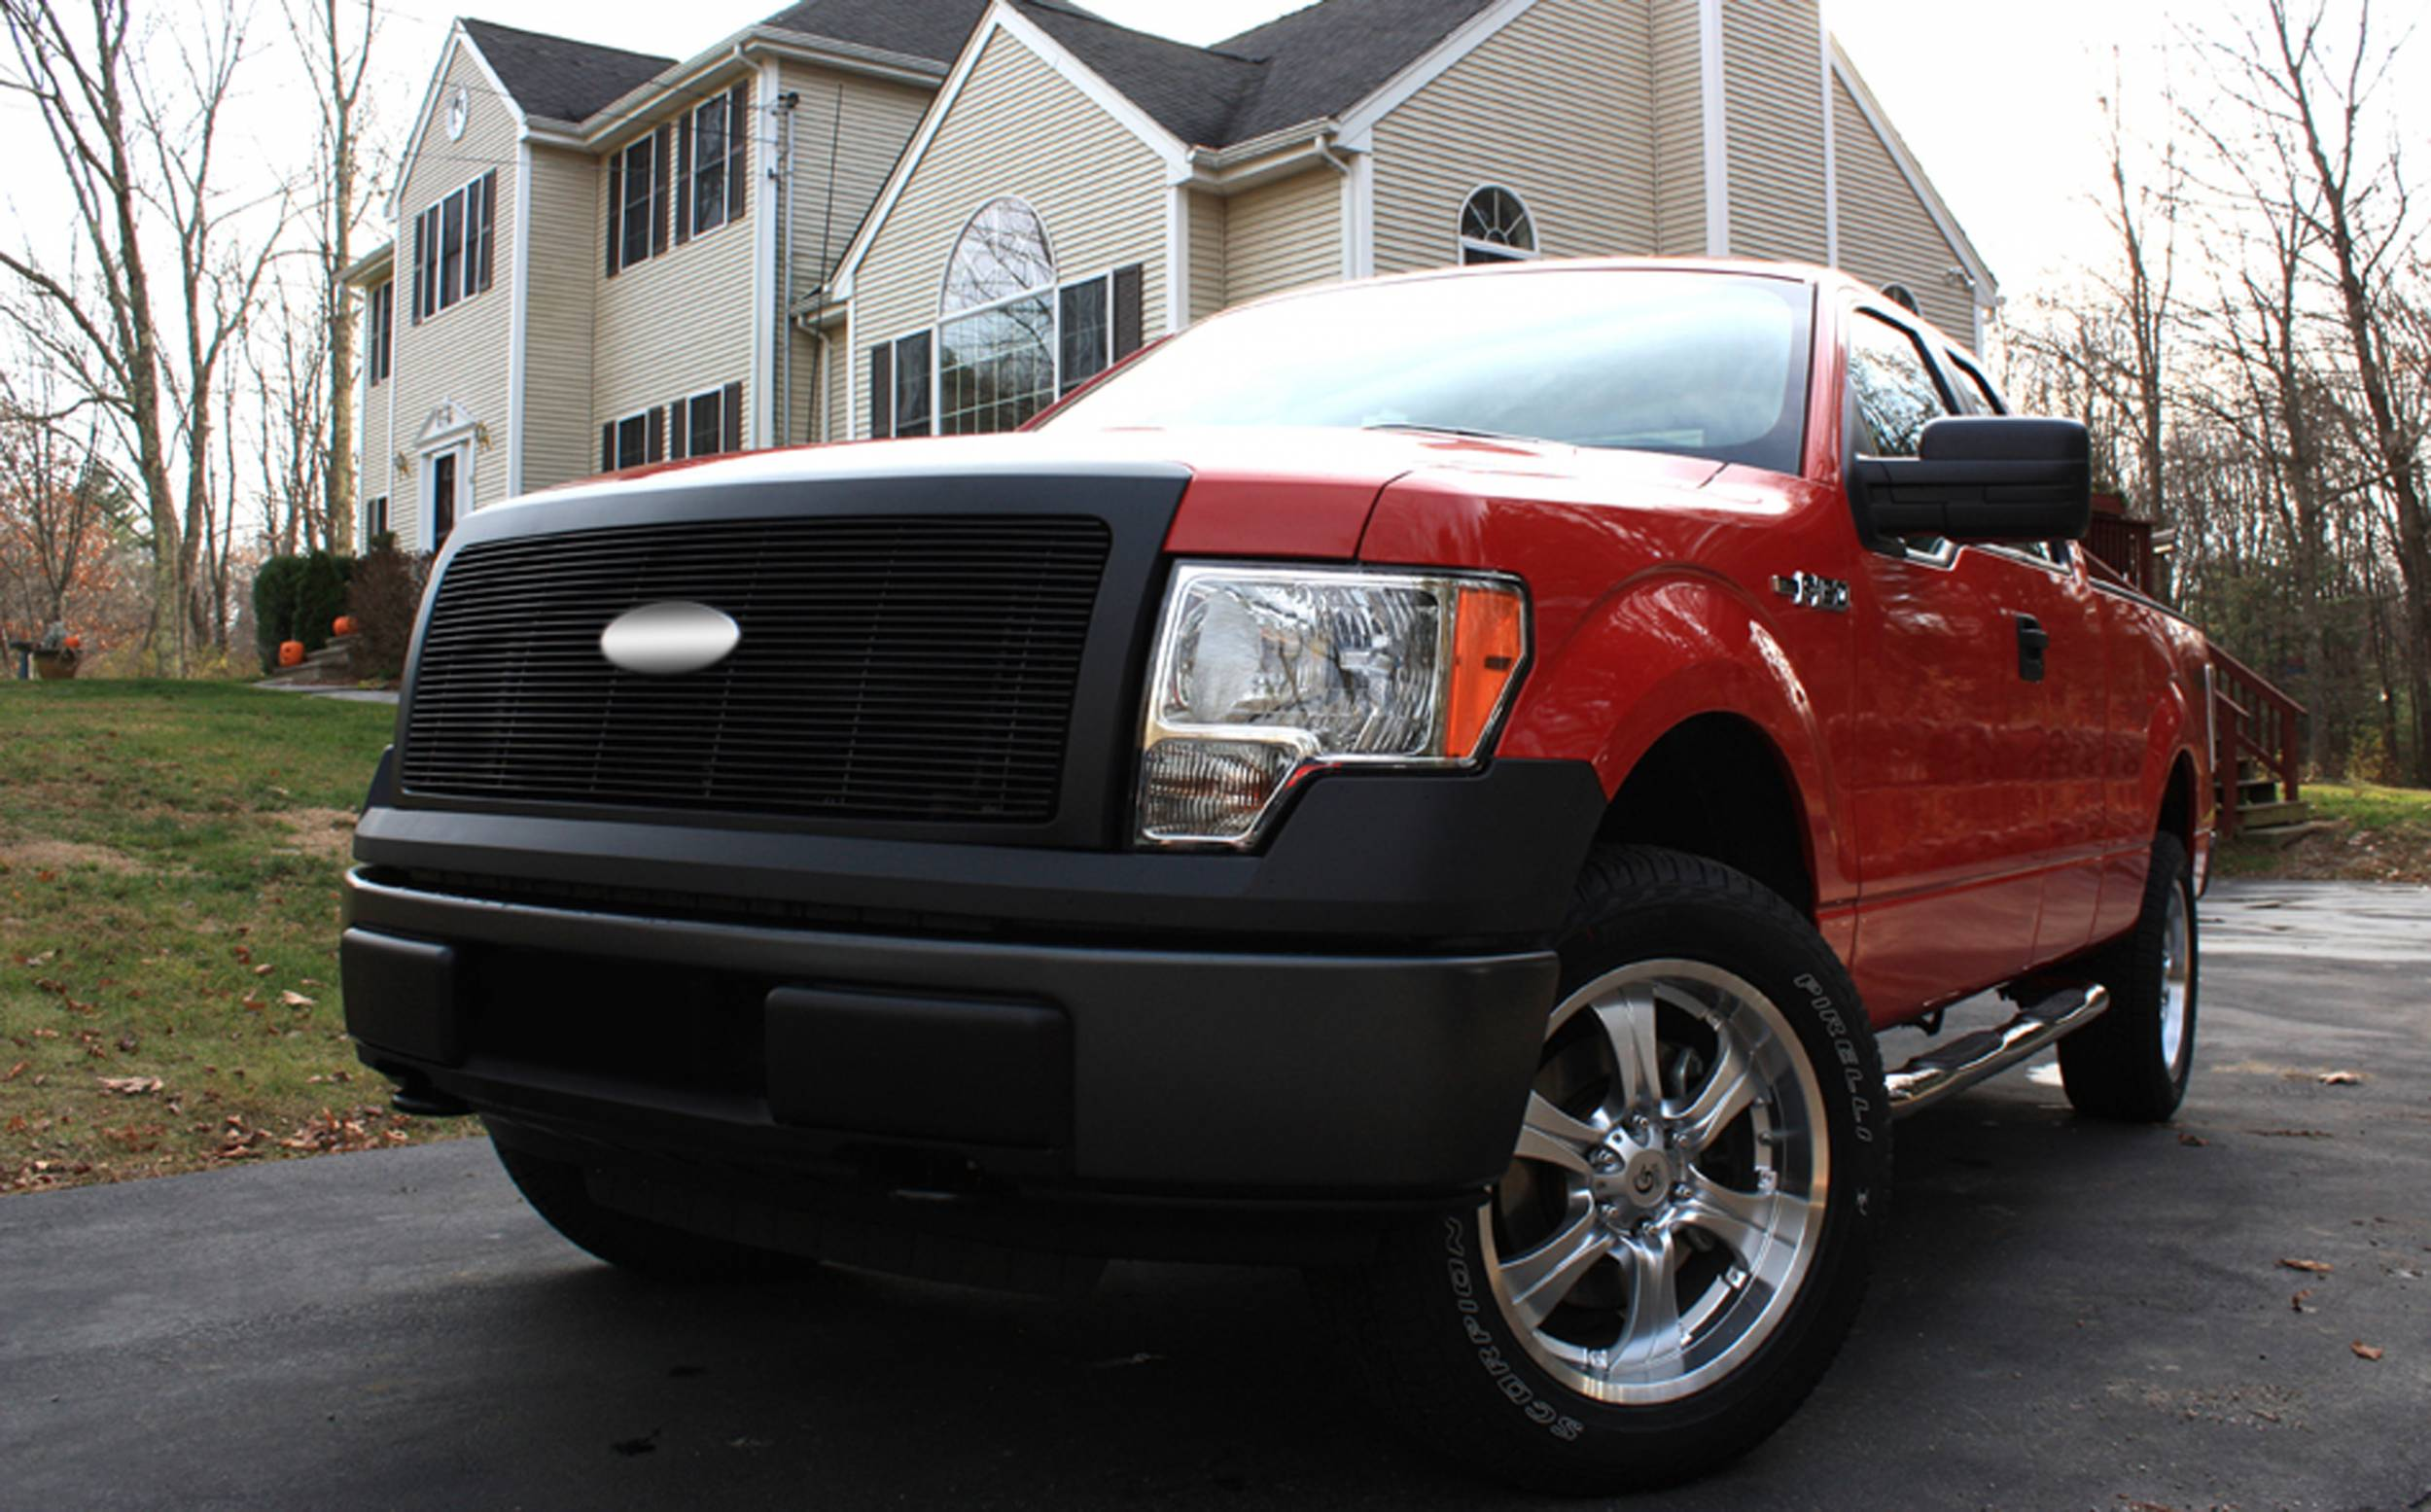 T-REX Grilles - Ford F-150 Billet Grille - 1 Pc Req. cutting factory grille center - All Black - Pt # 20568B